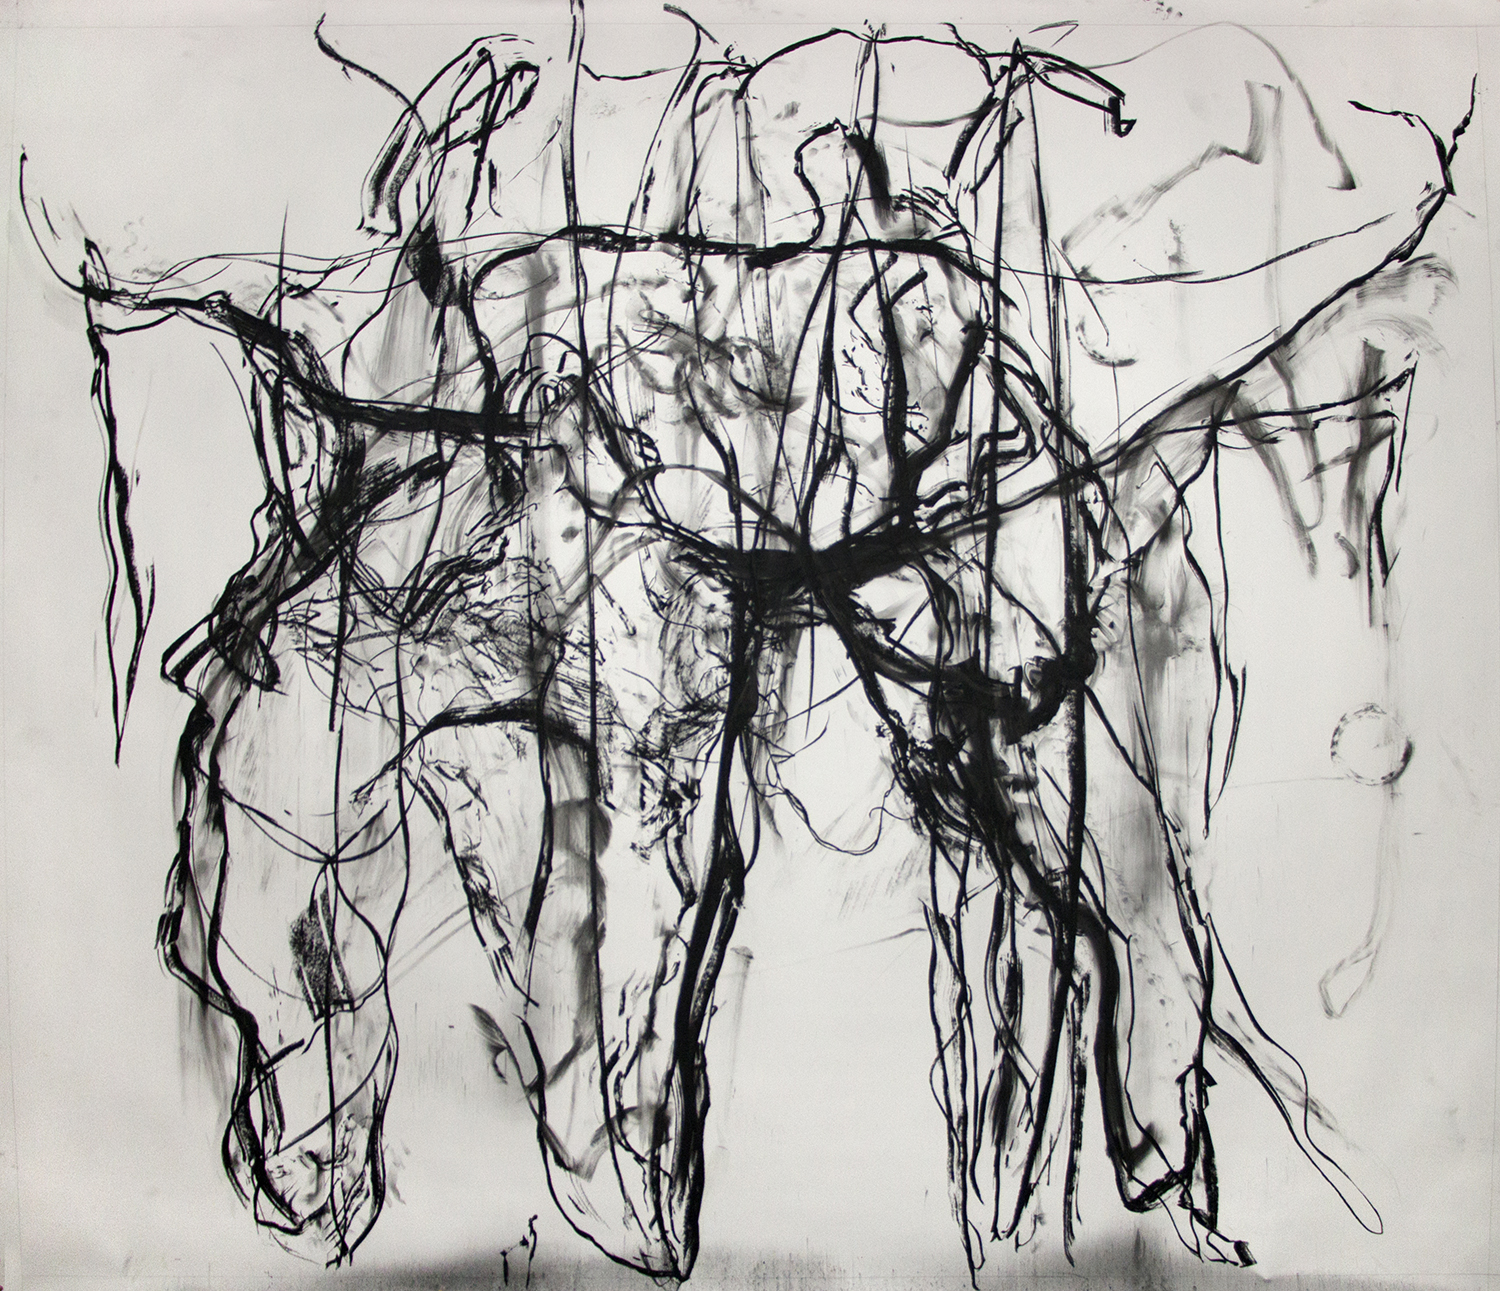 Birdeater, 2016, Charcoal on paper, 96 x 120 in.